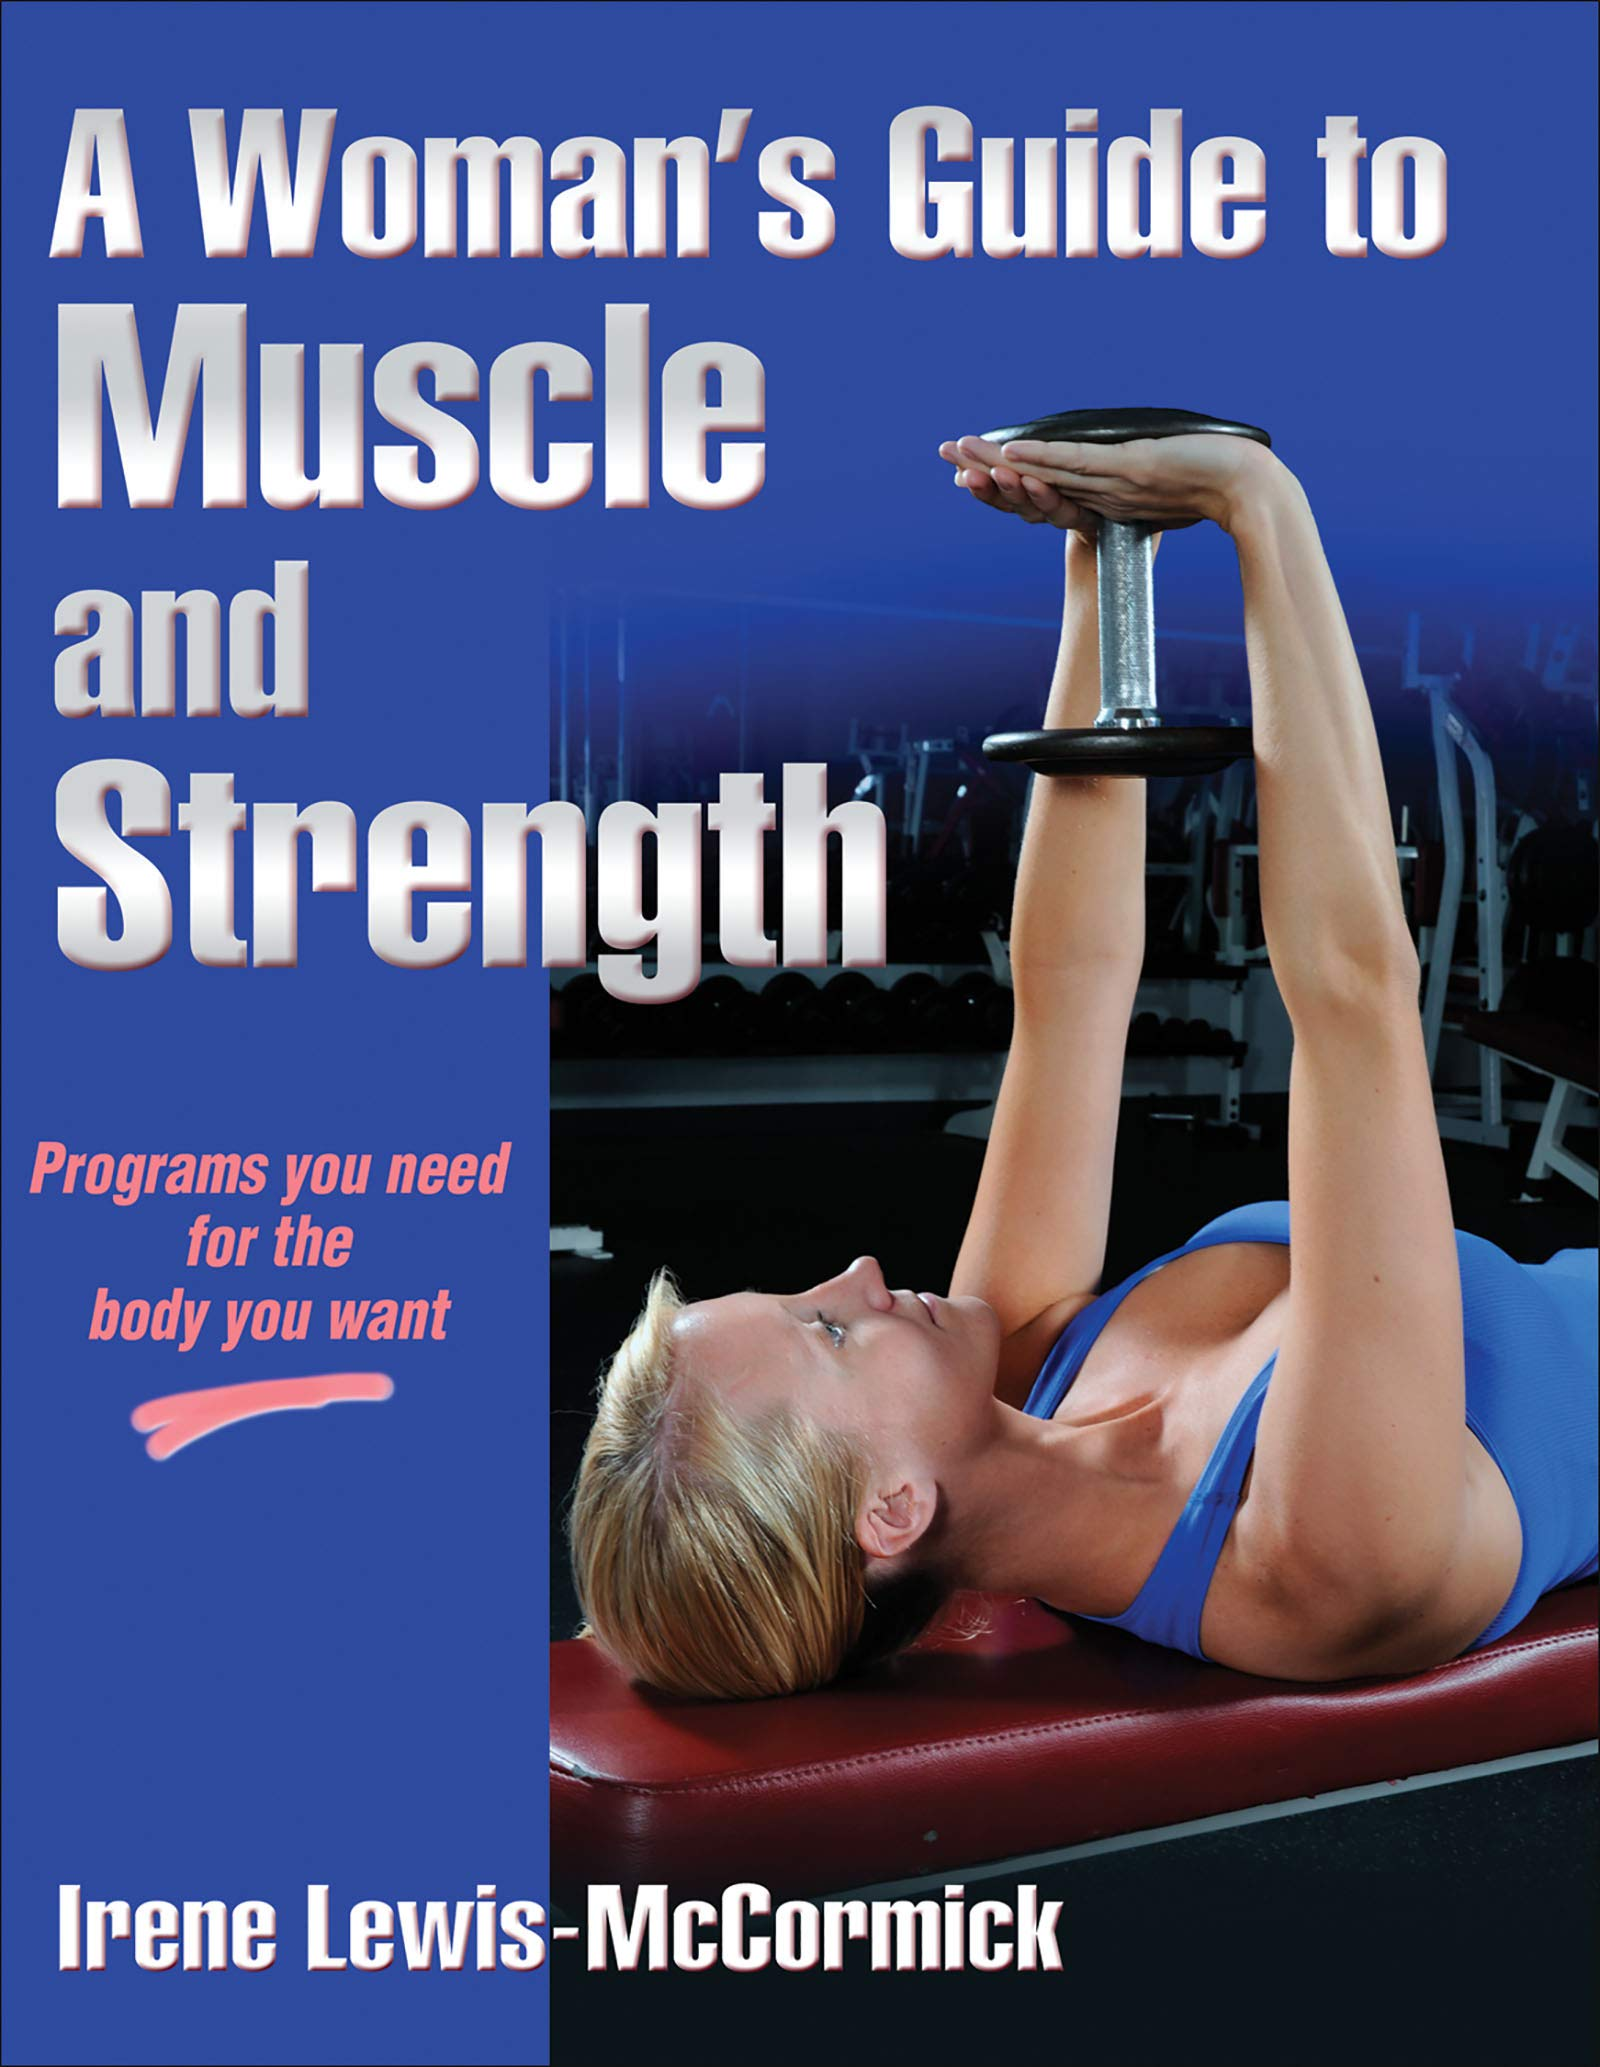 Download A Woman's Guide to Muscle and Strength PDF